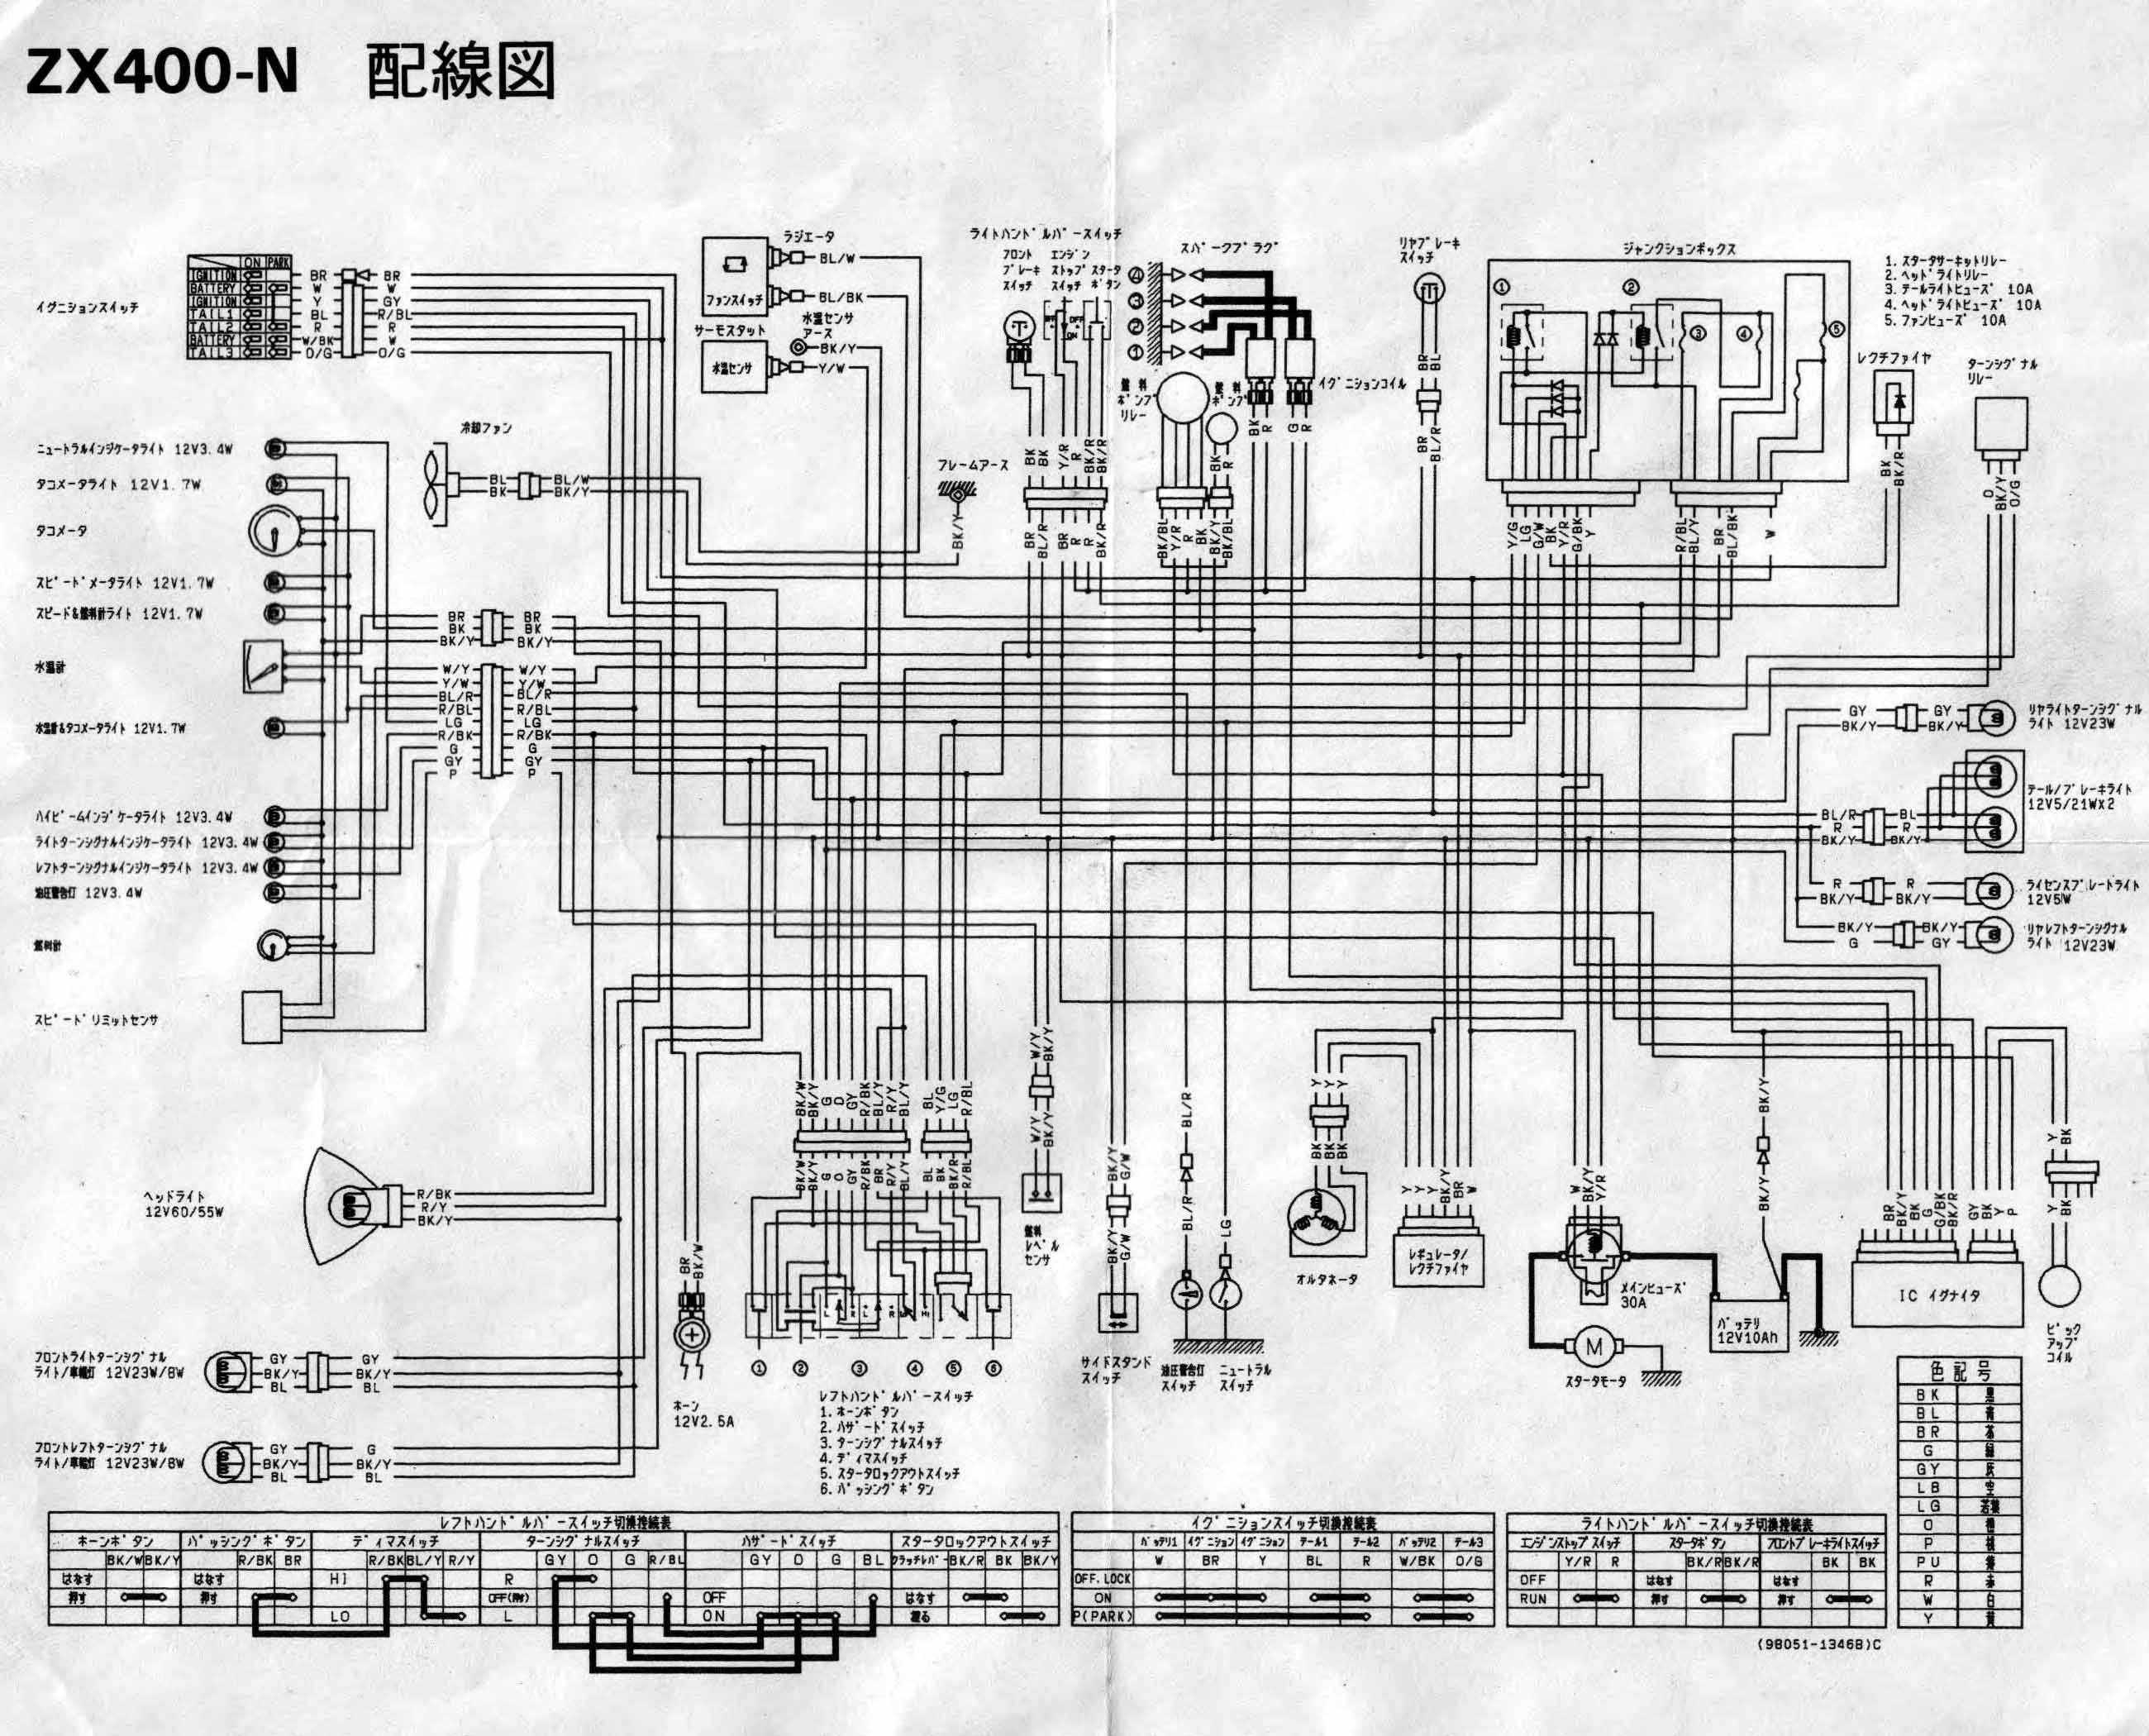 Kawasaki Gpz 400 Wiring Diagram Great Design Of Farmall 1985 Zzr Pics Specs And Information 1987 Yellow Underbone